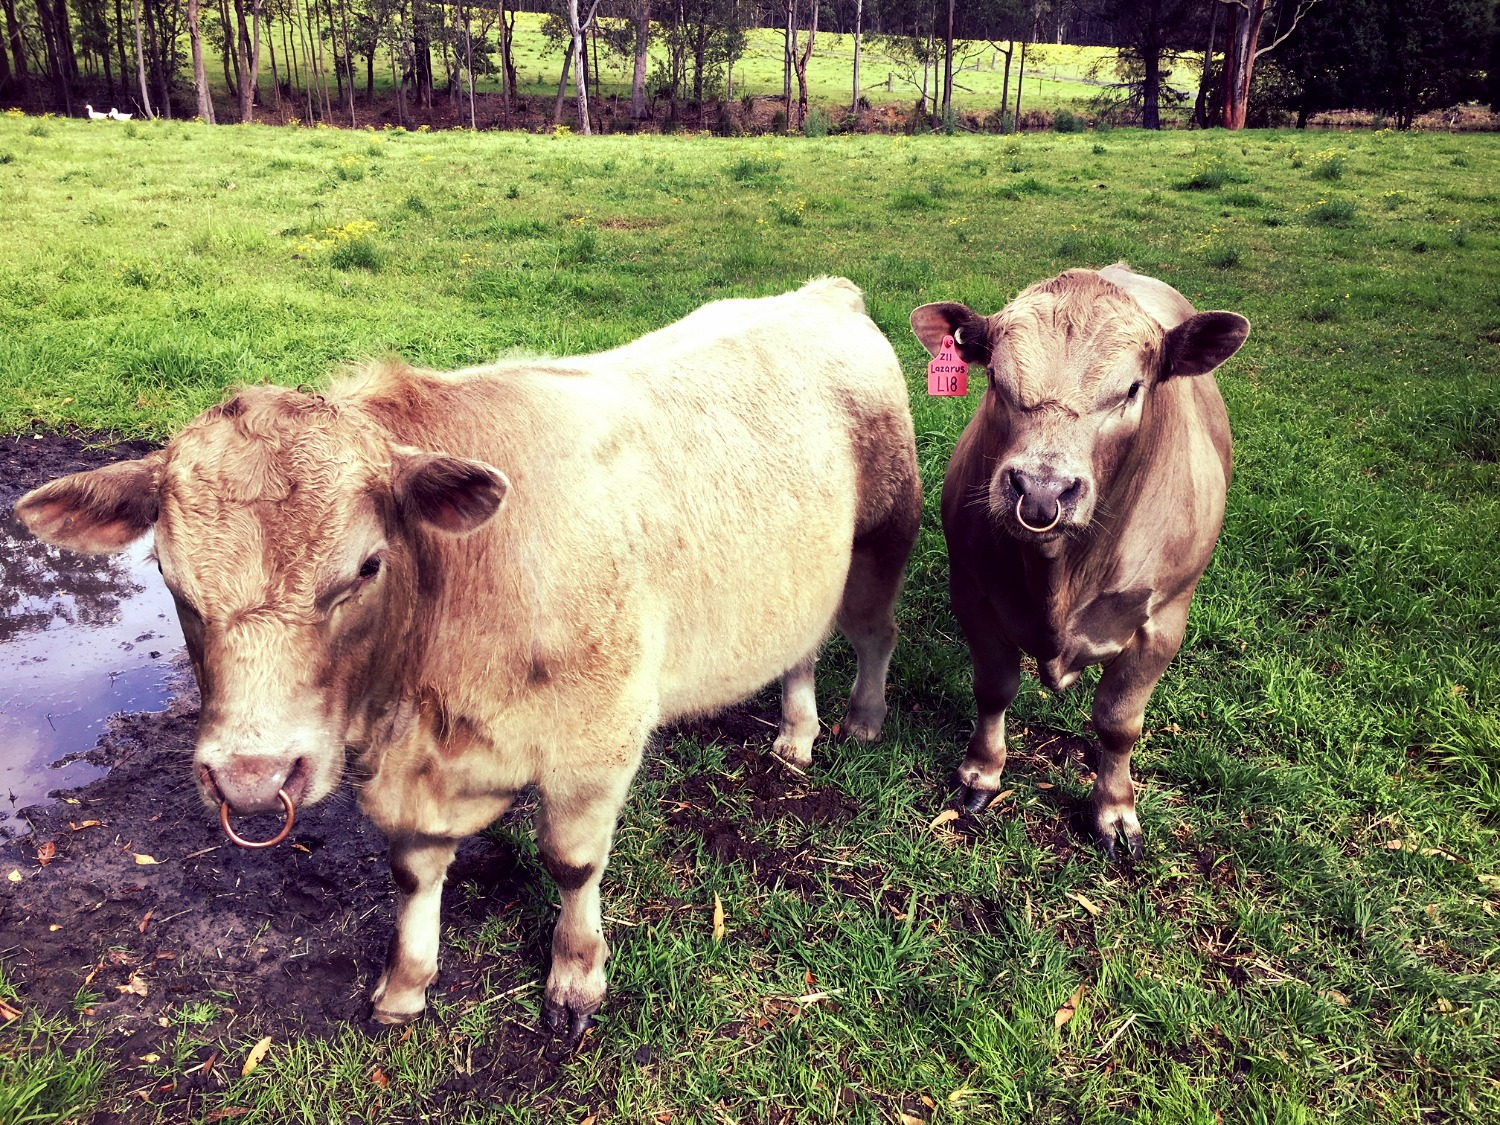 Young quality Square Meater bulls